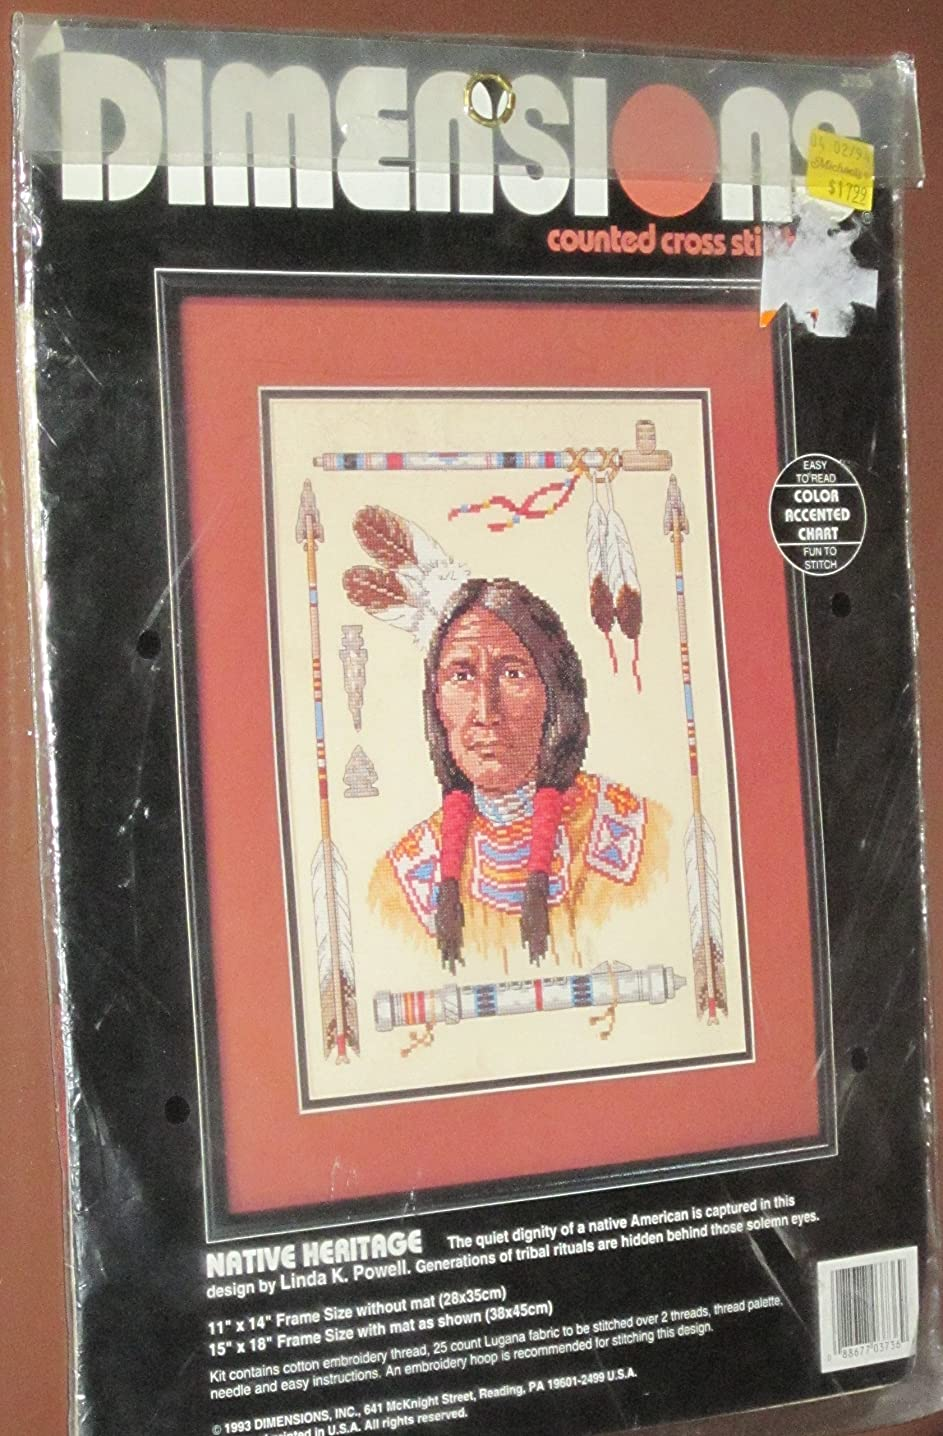 Native Heritage Counted Cross Stitch Kit